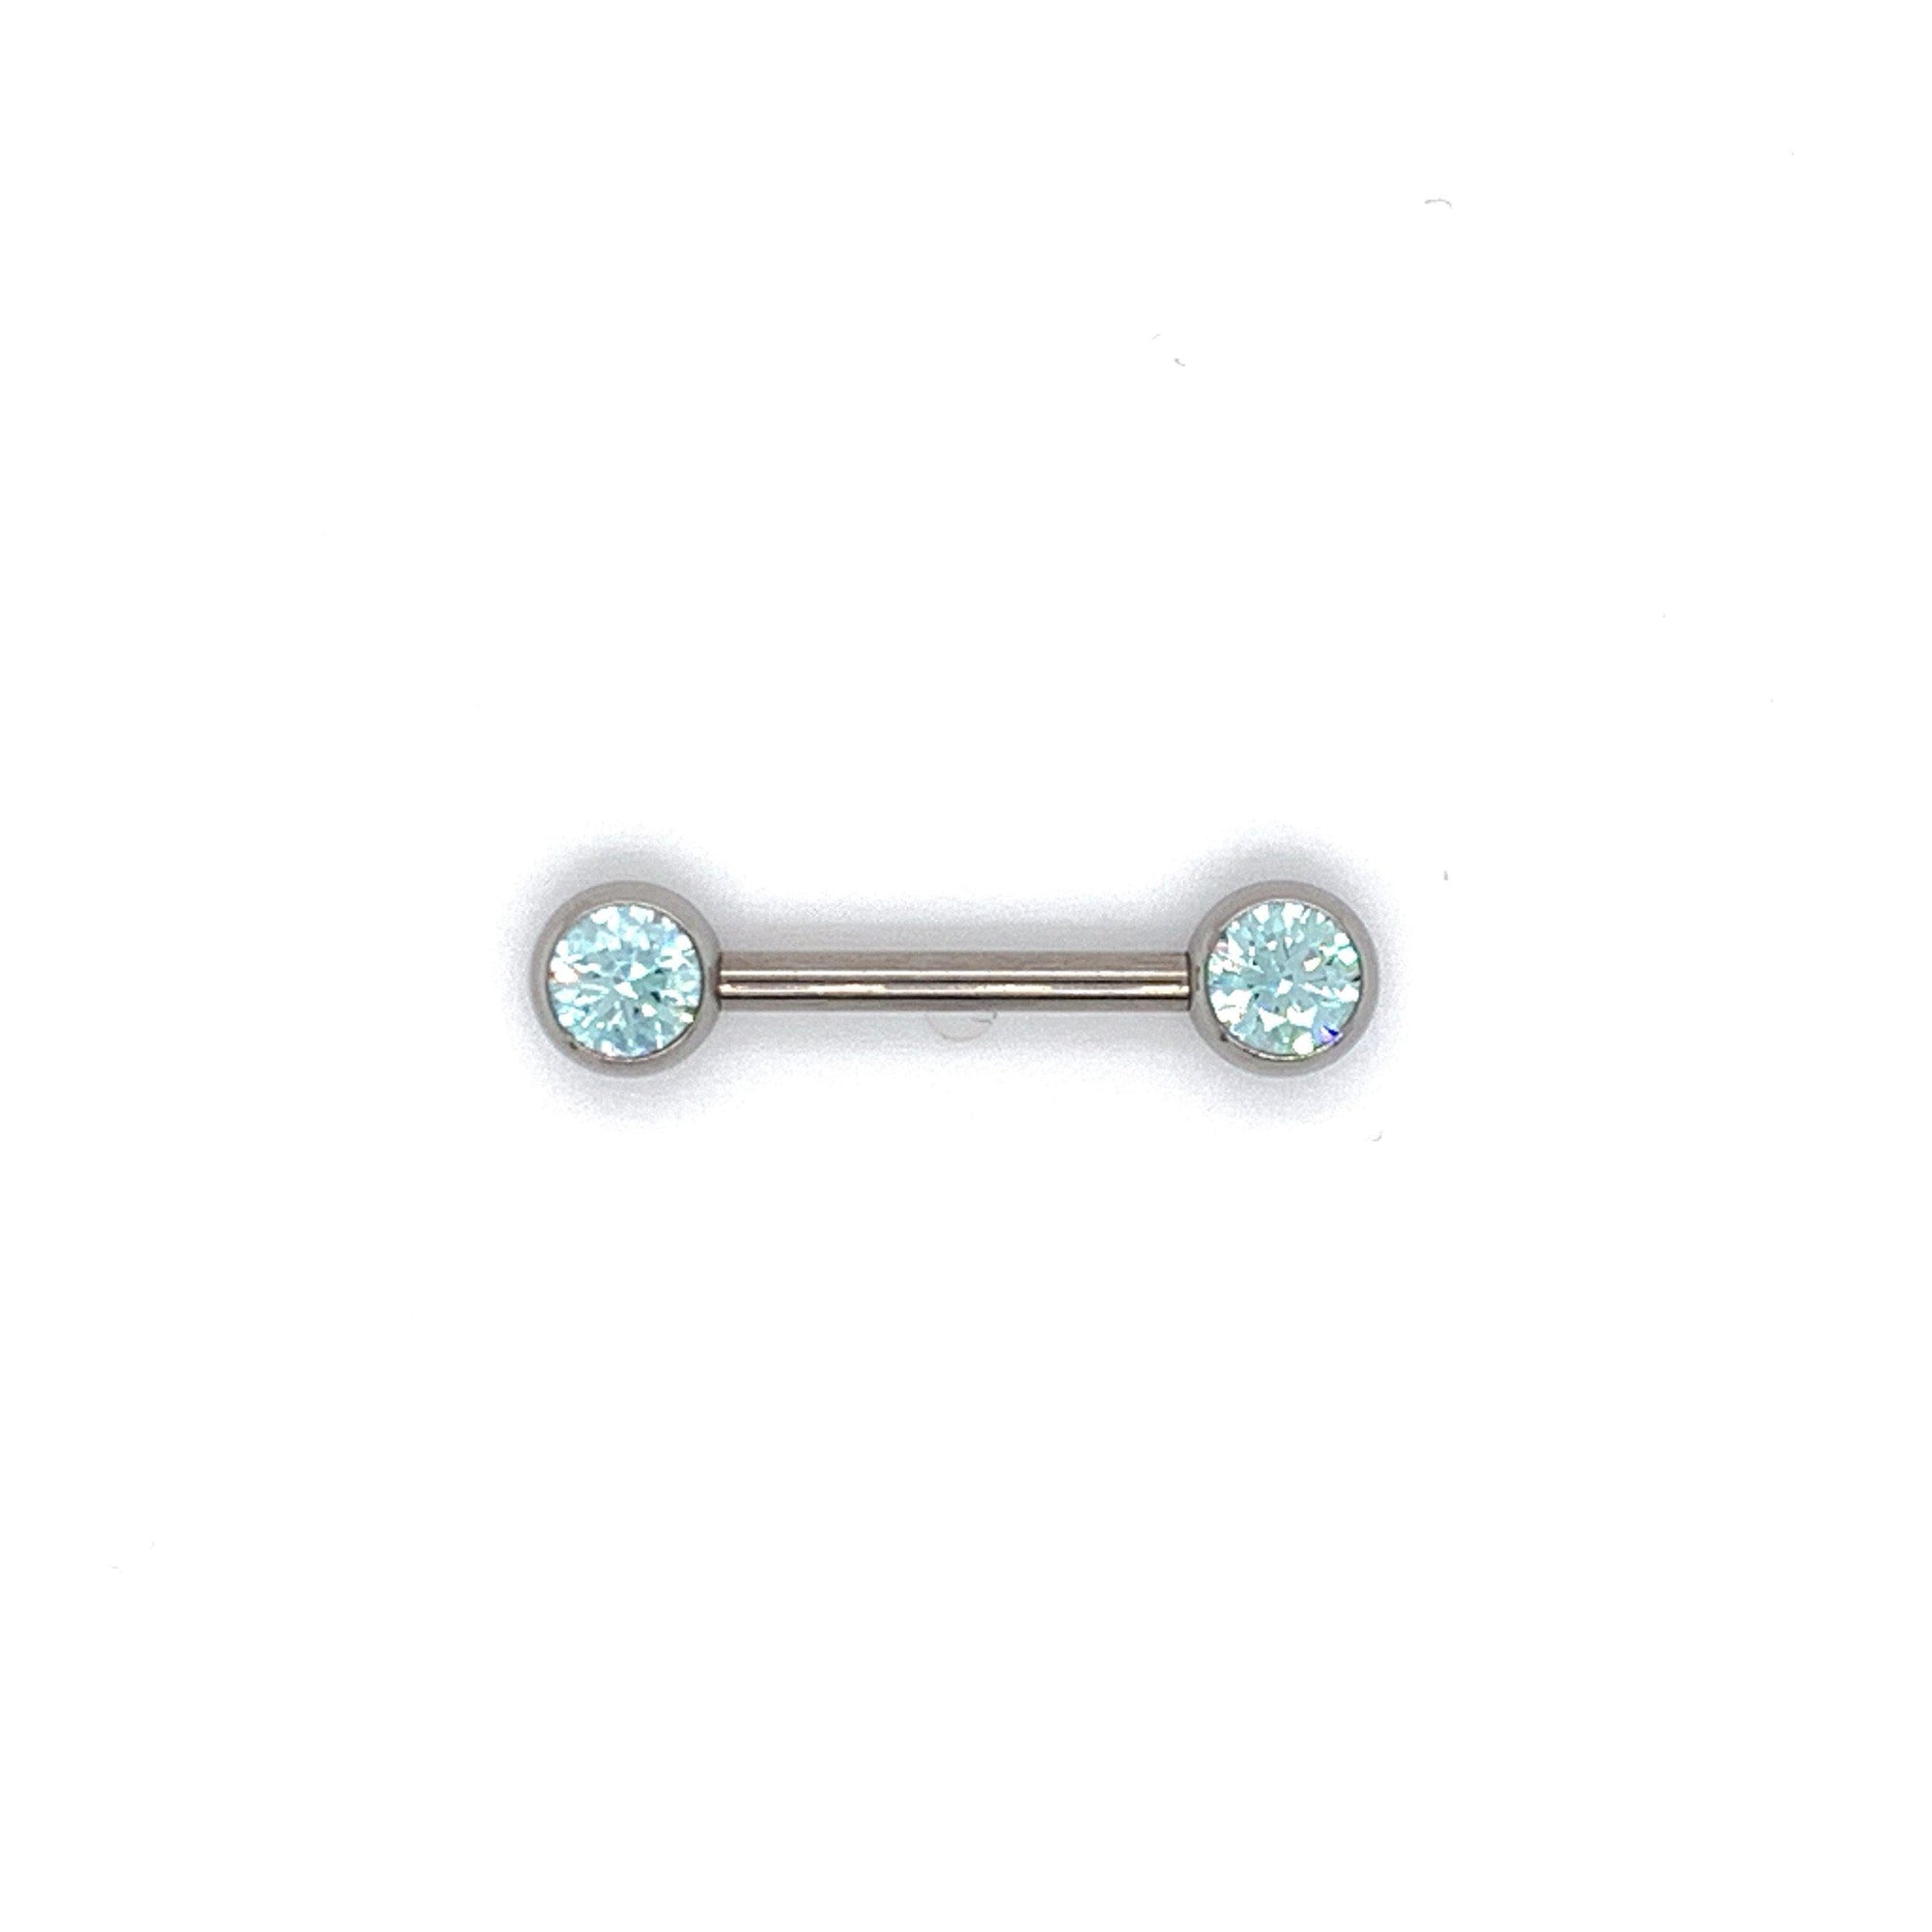 Neometal Nipple Bar with Frosty Mint CZ Gems THREADLESS